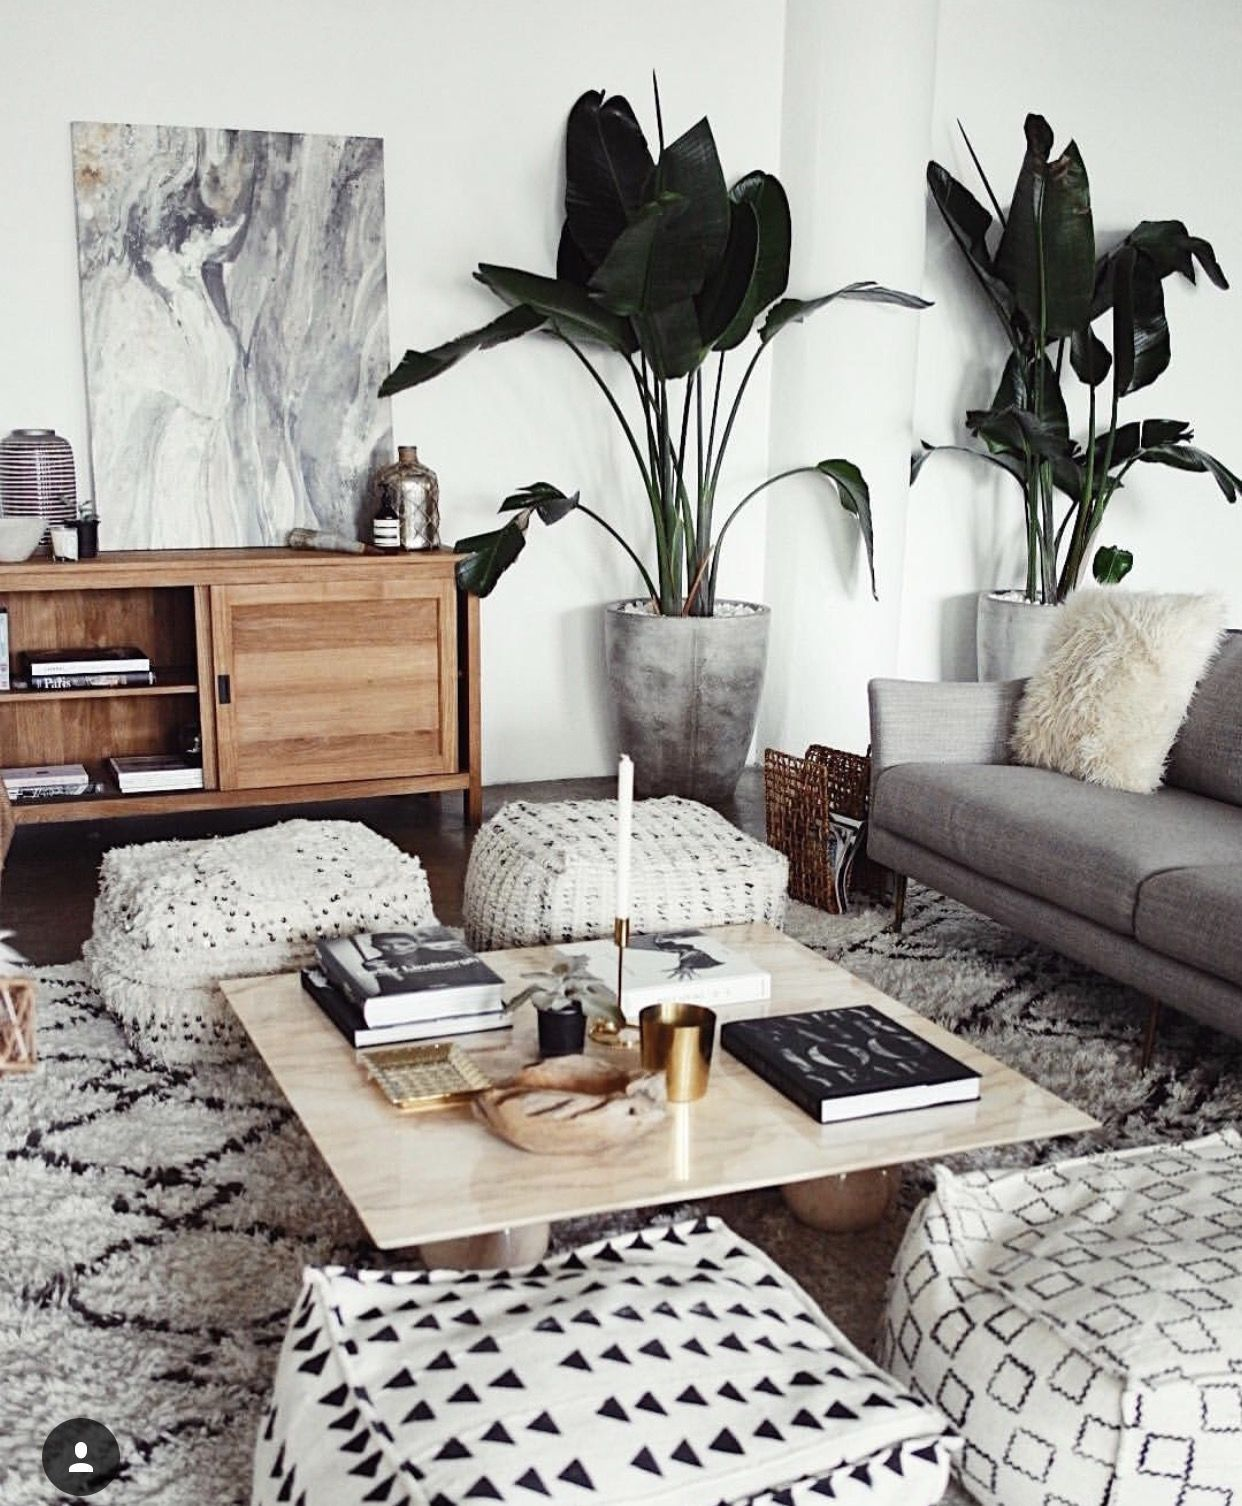 Black And White Small Living Room Interior Design Ideas Home Decor Ideas Diy Home Decor Apartment Small Living Room Decor Living Room Designs Room Inspiration #small #white #living #room #ideas